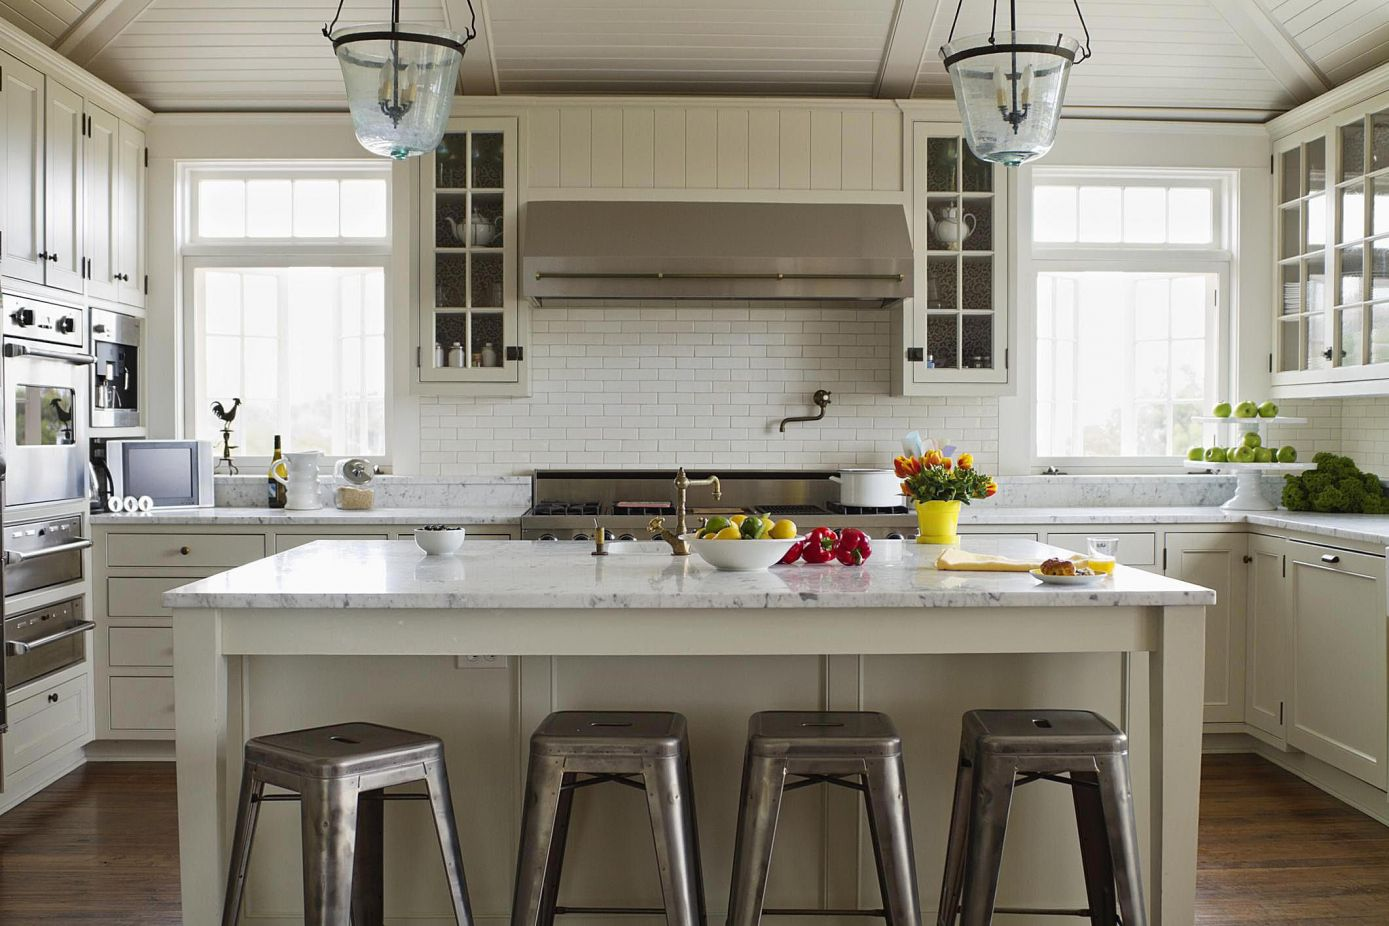 77 Kitchen Remodeling Costs Most Popular Interior Paint Colors Check More At Http Www Soa Kitchen Remodel Cost Kitchen Trends Average Kitchen Remodel Cost